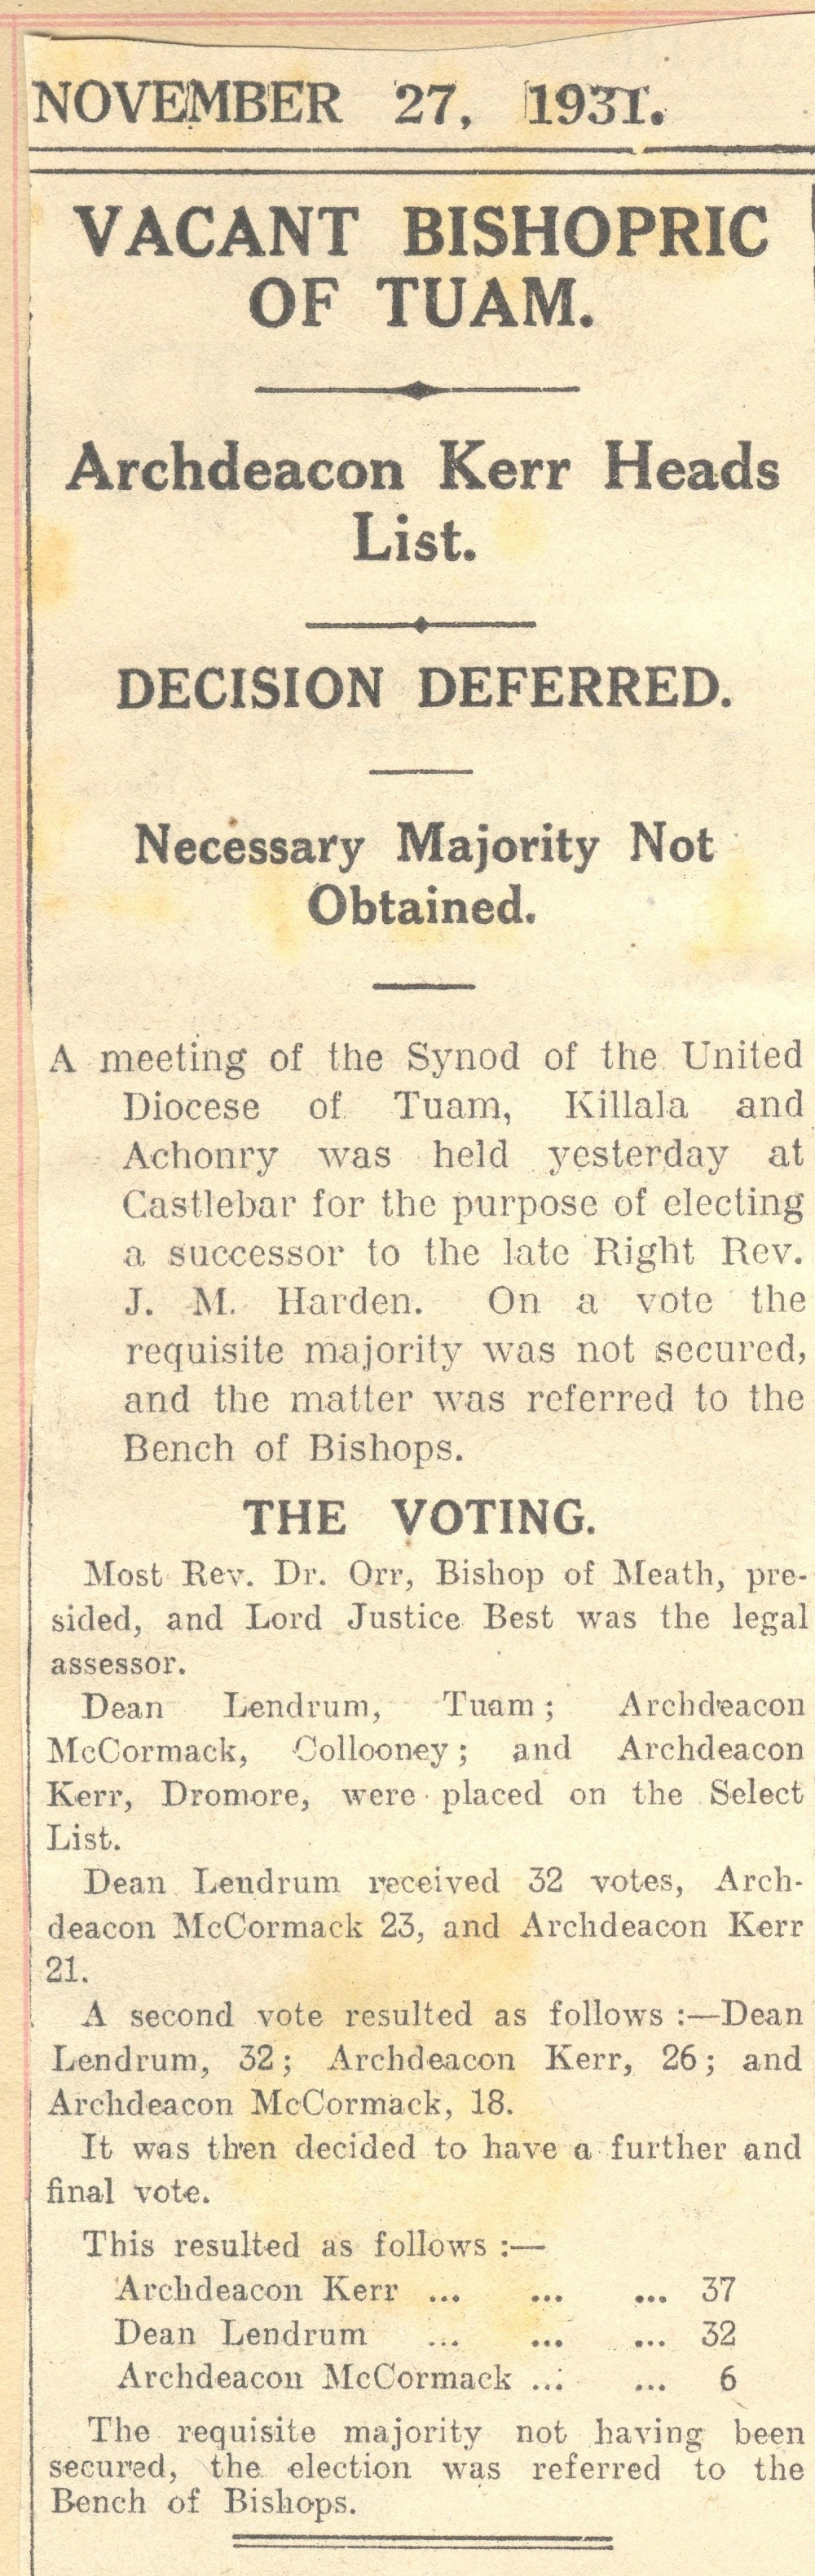 Scrapbook recording press report of voting in the 'vacant bishopric       of Tuam', 27 November 1931, RCB Library MS 813/7/5.